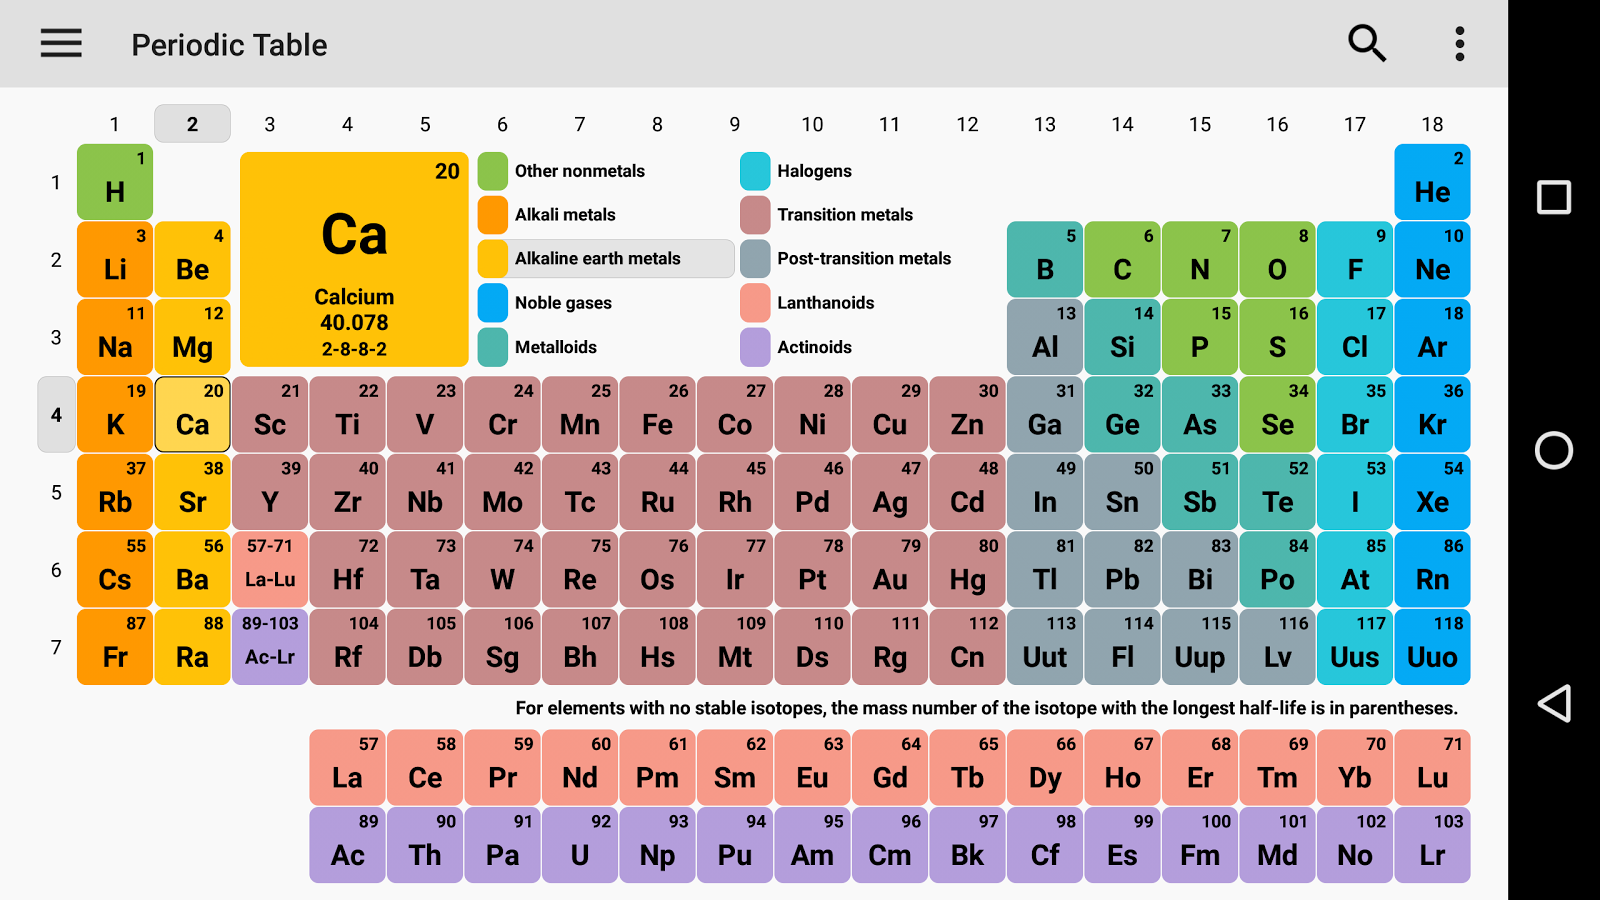 Periodic table 2018 chemistry in your pocket 630 apk download periodic table 2018 chemistry in your pocket urtaz Choice Image